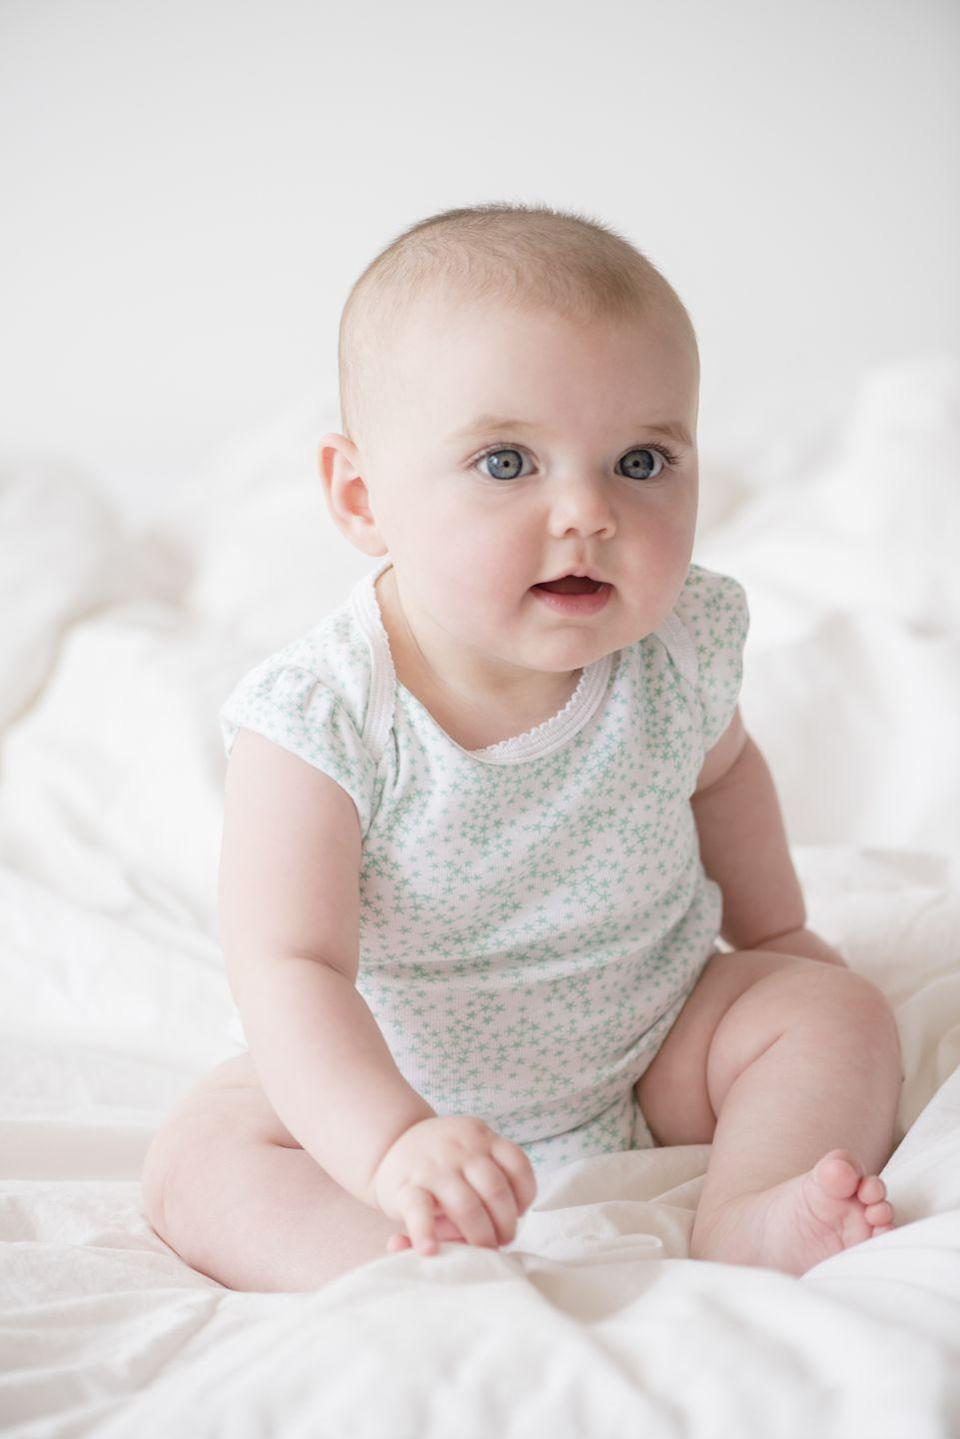 <p>David, Michael, and James are the top three boys names. Mary, Susan, and Linda are crowned the best baby girl names. Fun fact: Linda is the feminine form of lindo, meaning beautiful, pretty, and cute.</p>